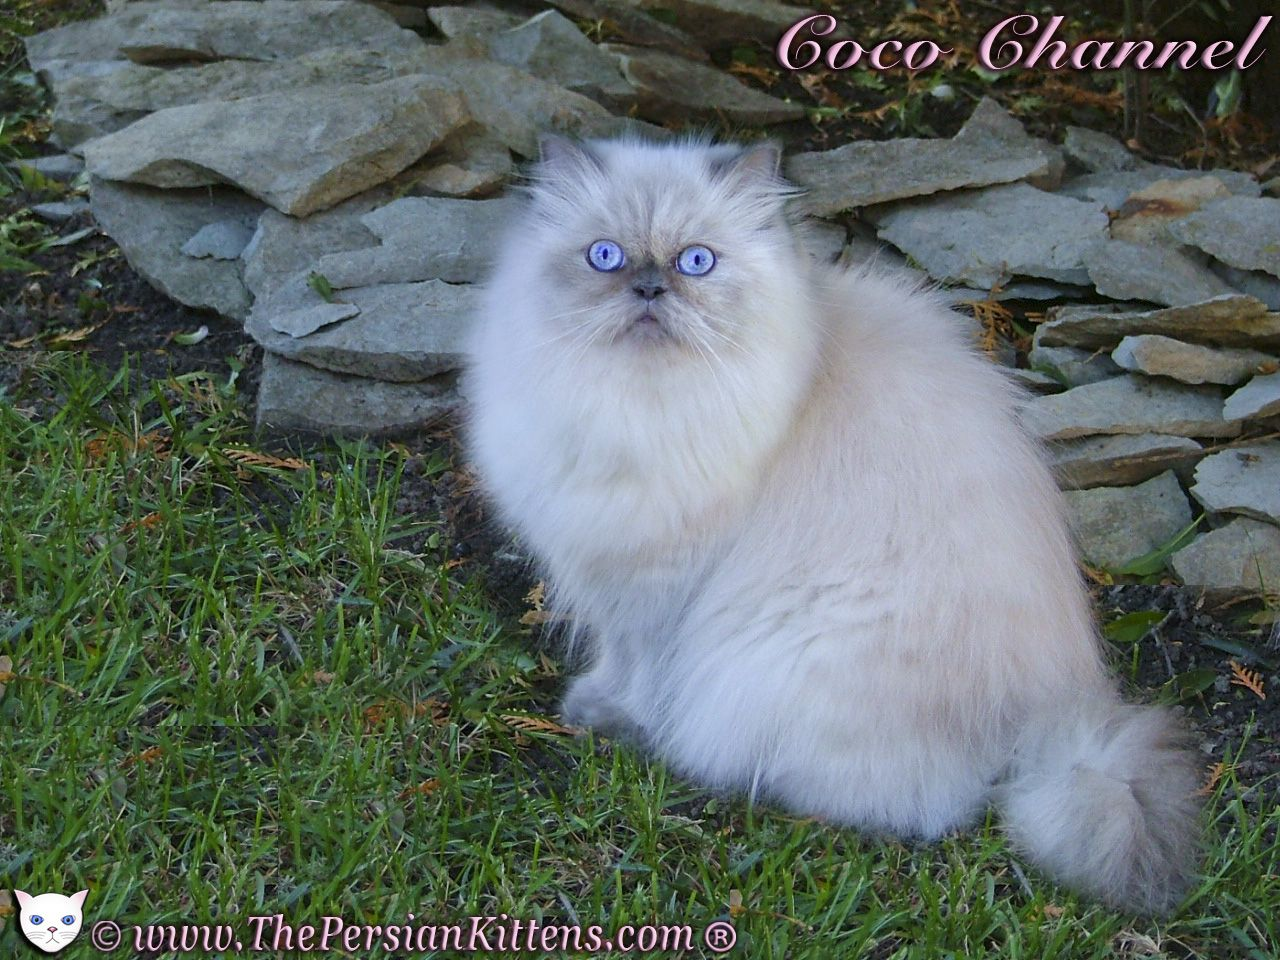 I love this beautiful Persian cat name Coco Channel